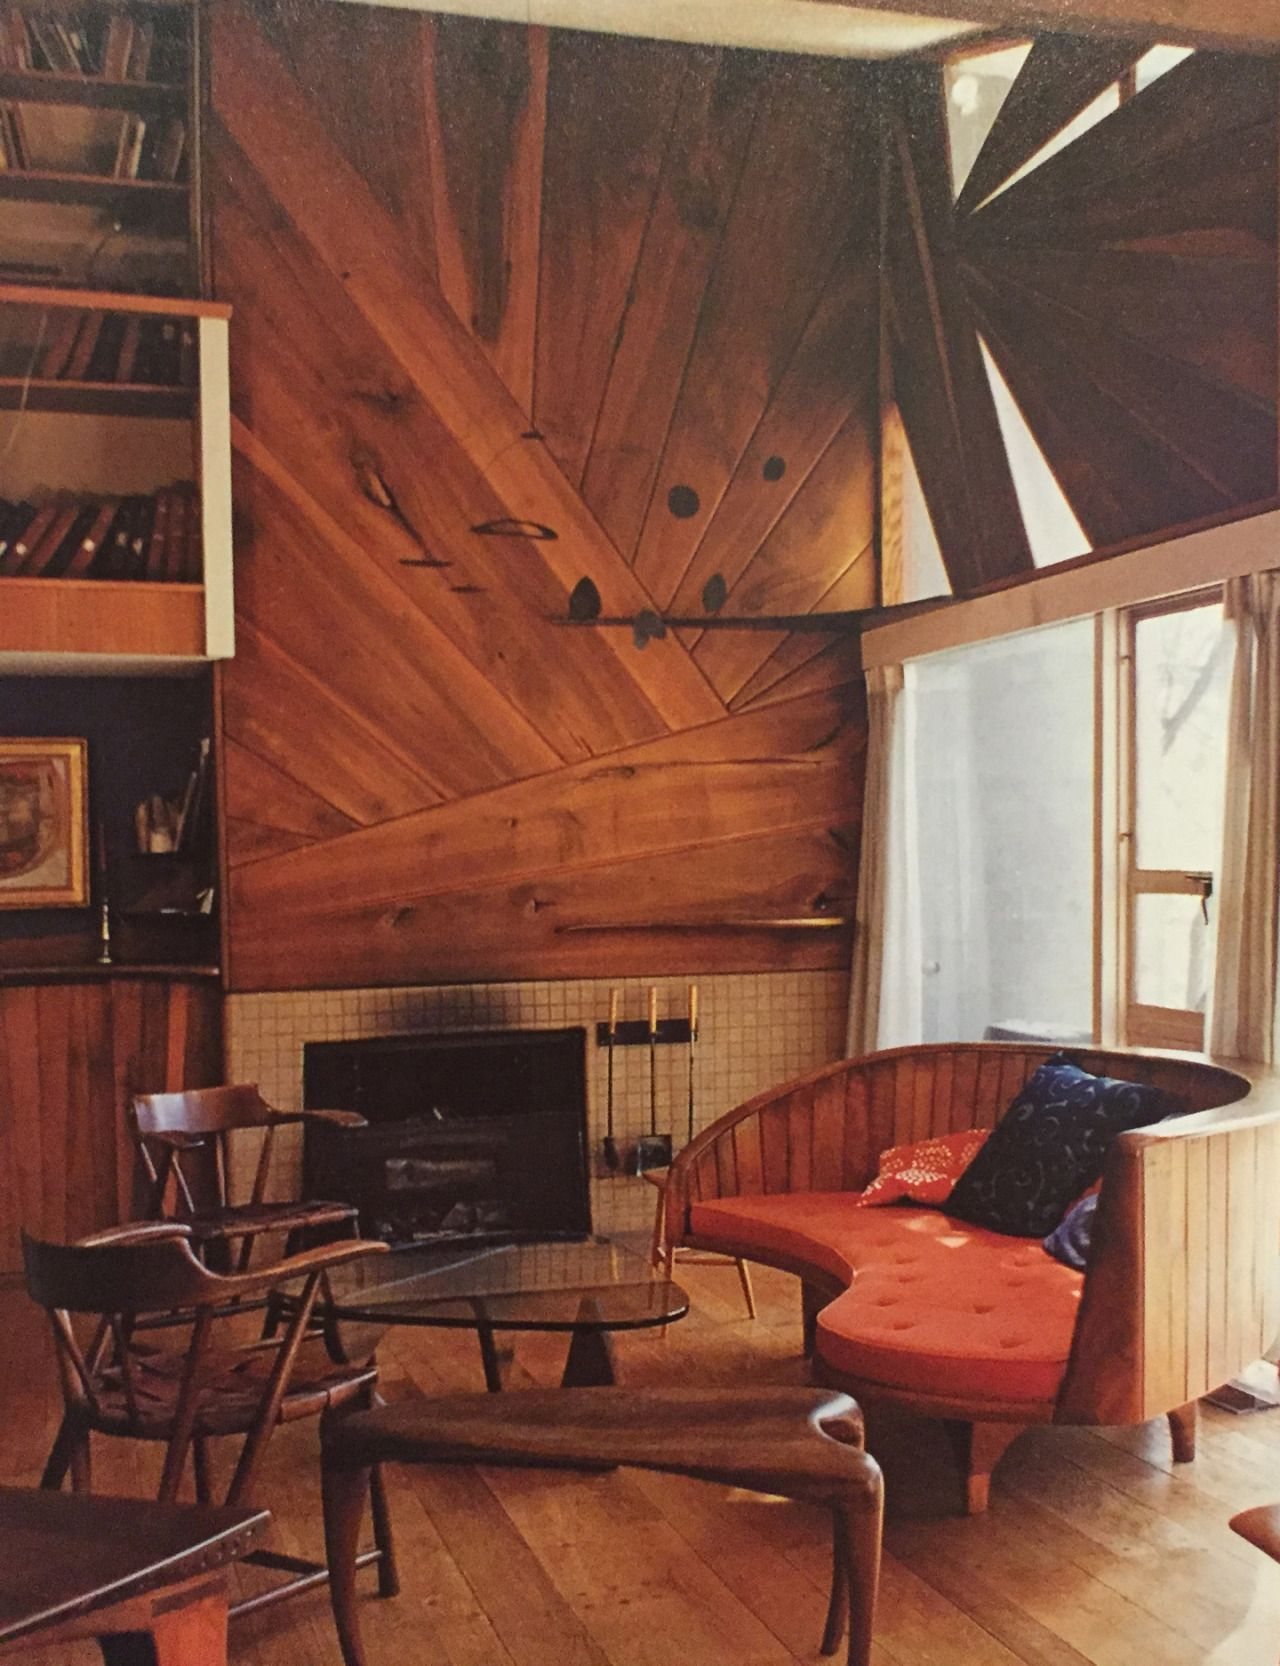 Interior Wood Paneling: WHARTON ESHERICK, Living Room Interior Of The Home Owned